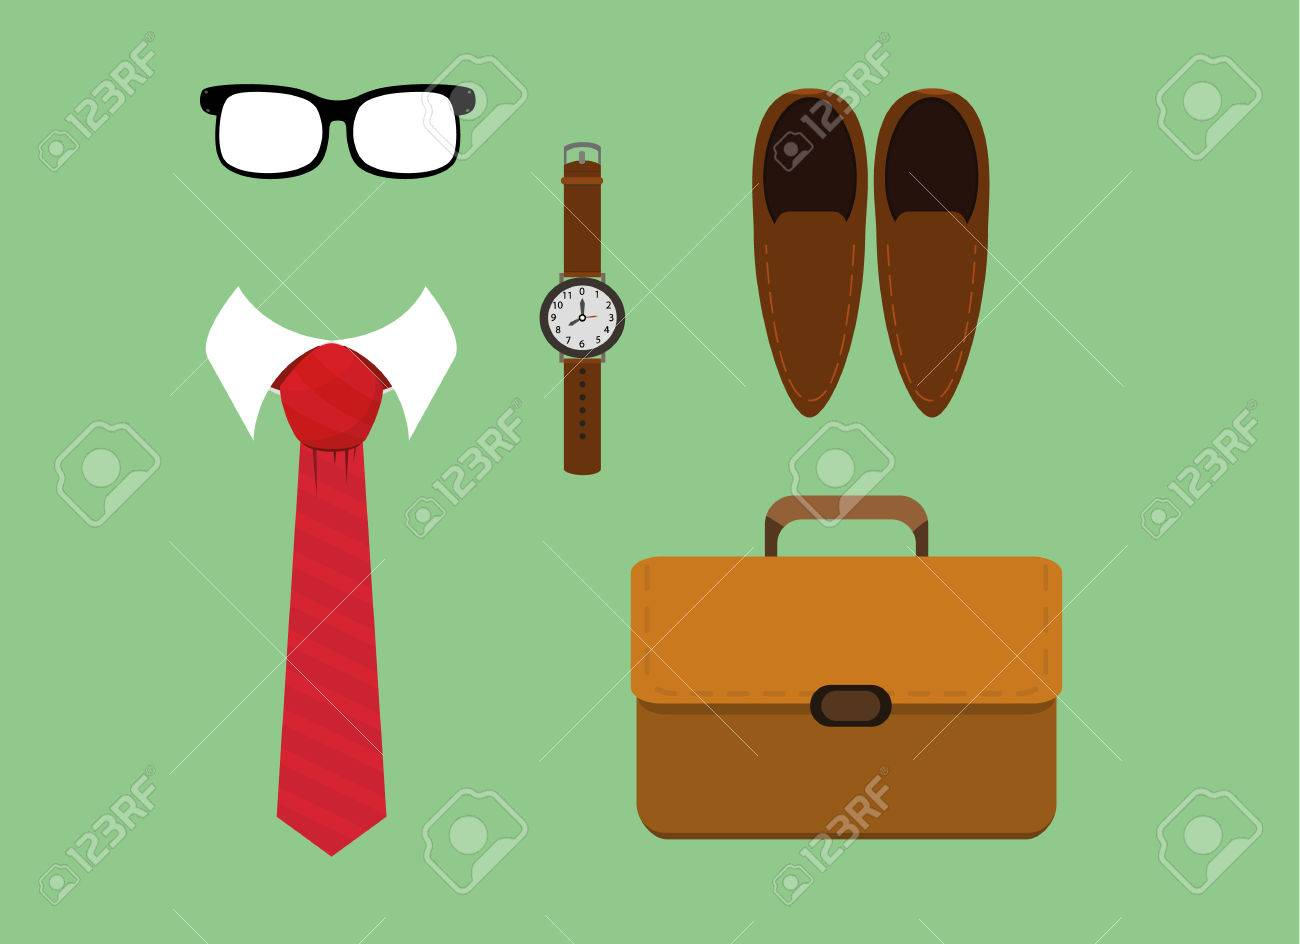 973f185b861 Vector - vector illustration of flat lay men fashion casual accessories  tie